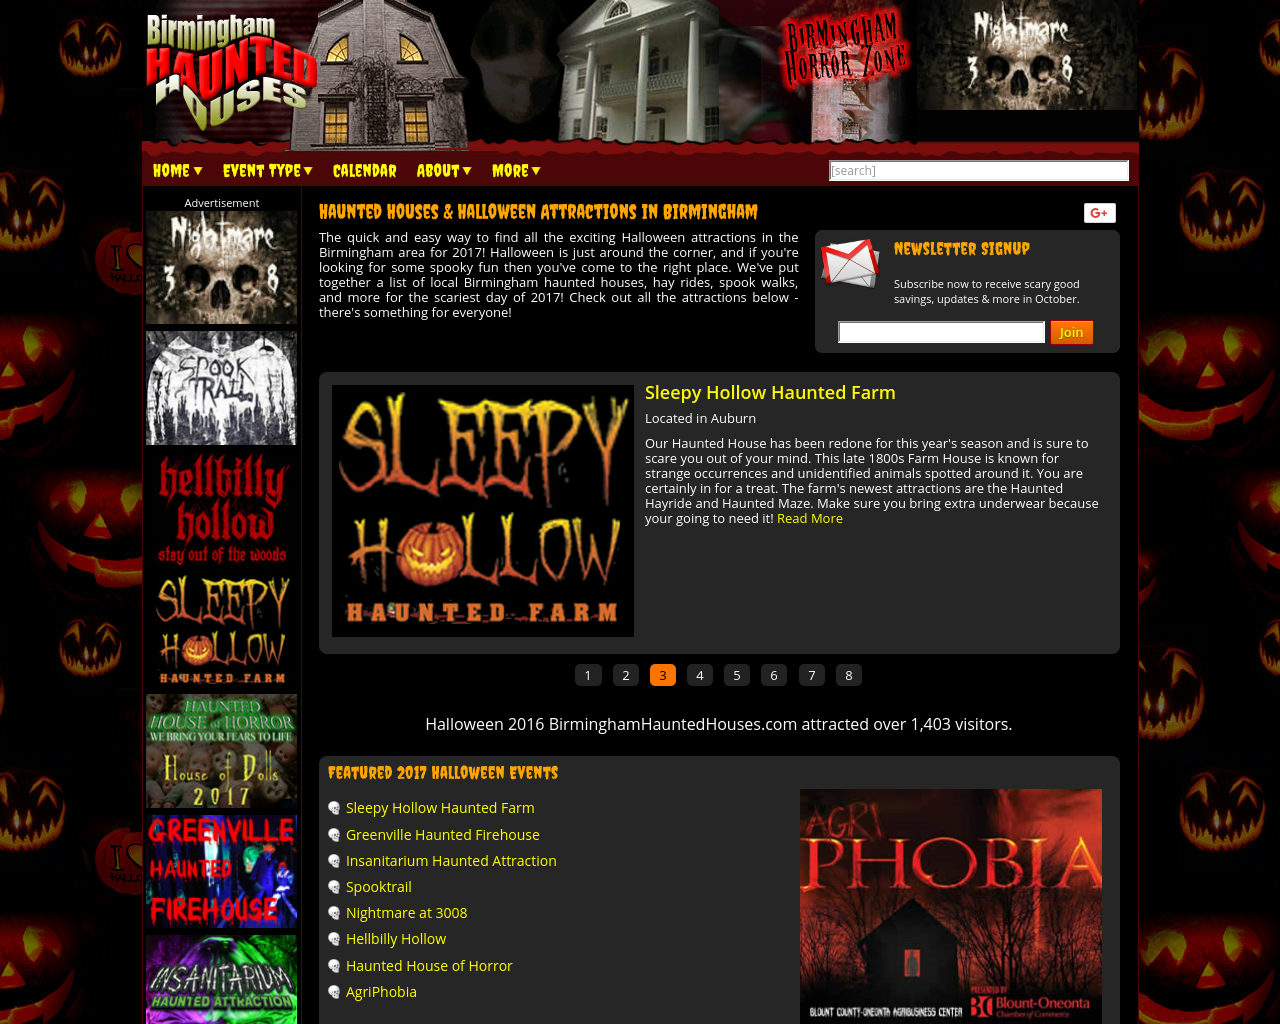 Birmingham-Haunted-Houses-Advertising-Reviews-Pricing